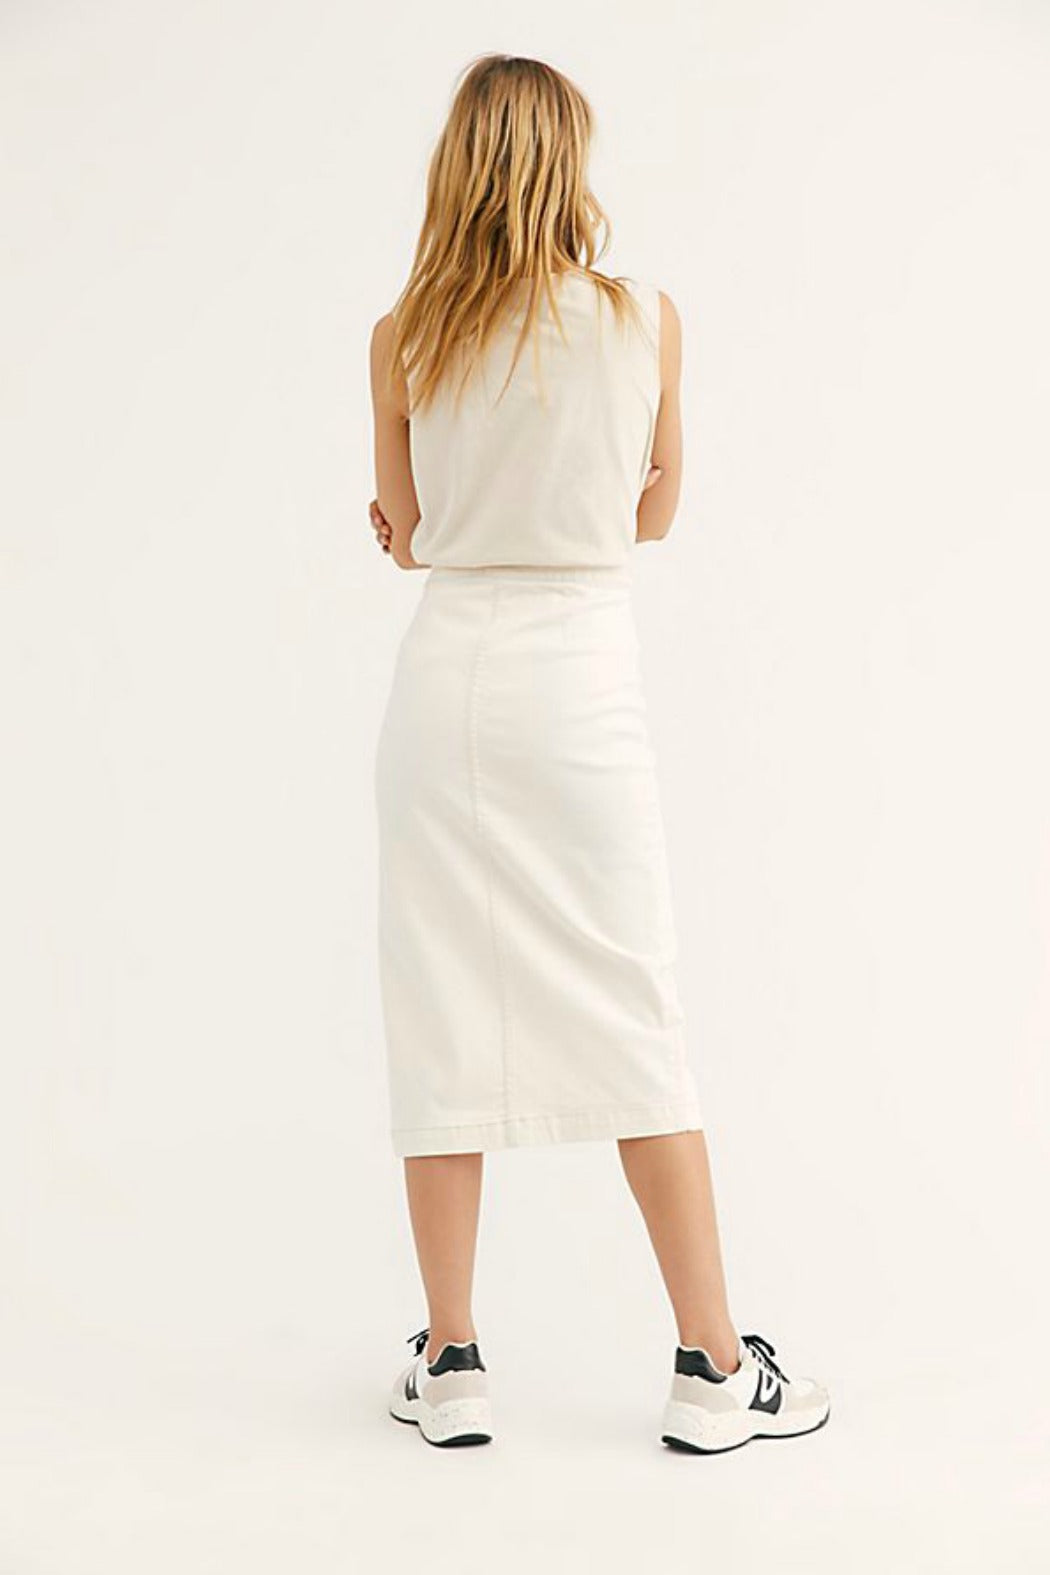 827ac29bc Free People Jasmine Buttoned Midi Skirt in White – Queen of Hearts ...